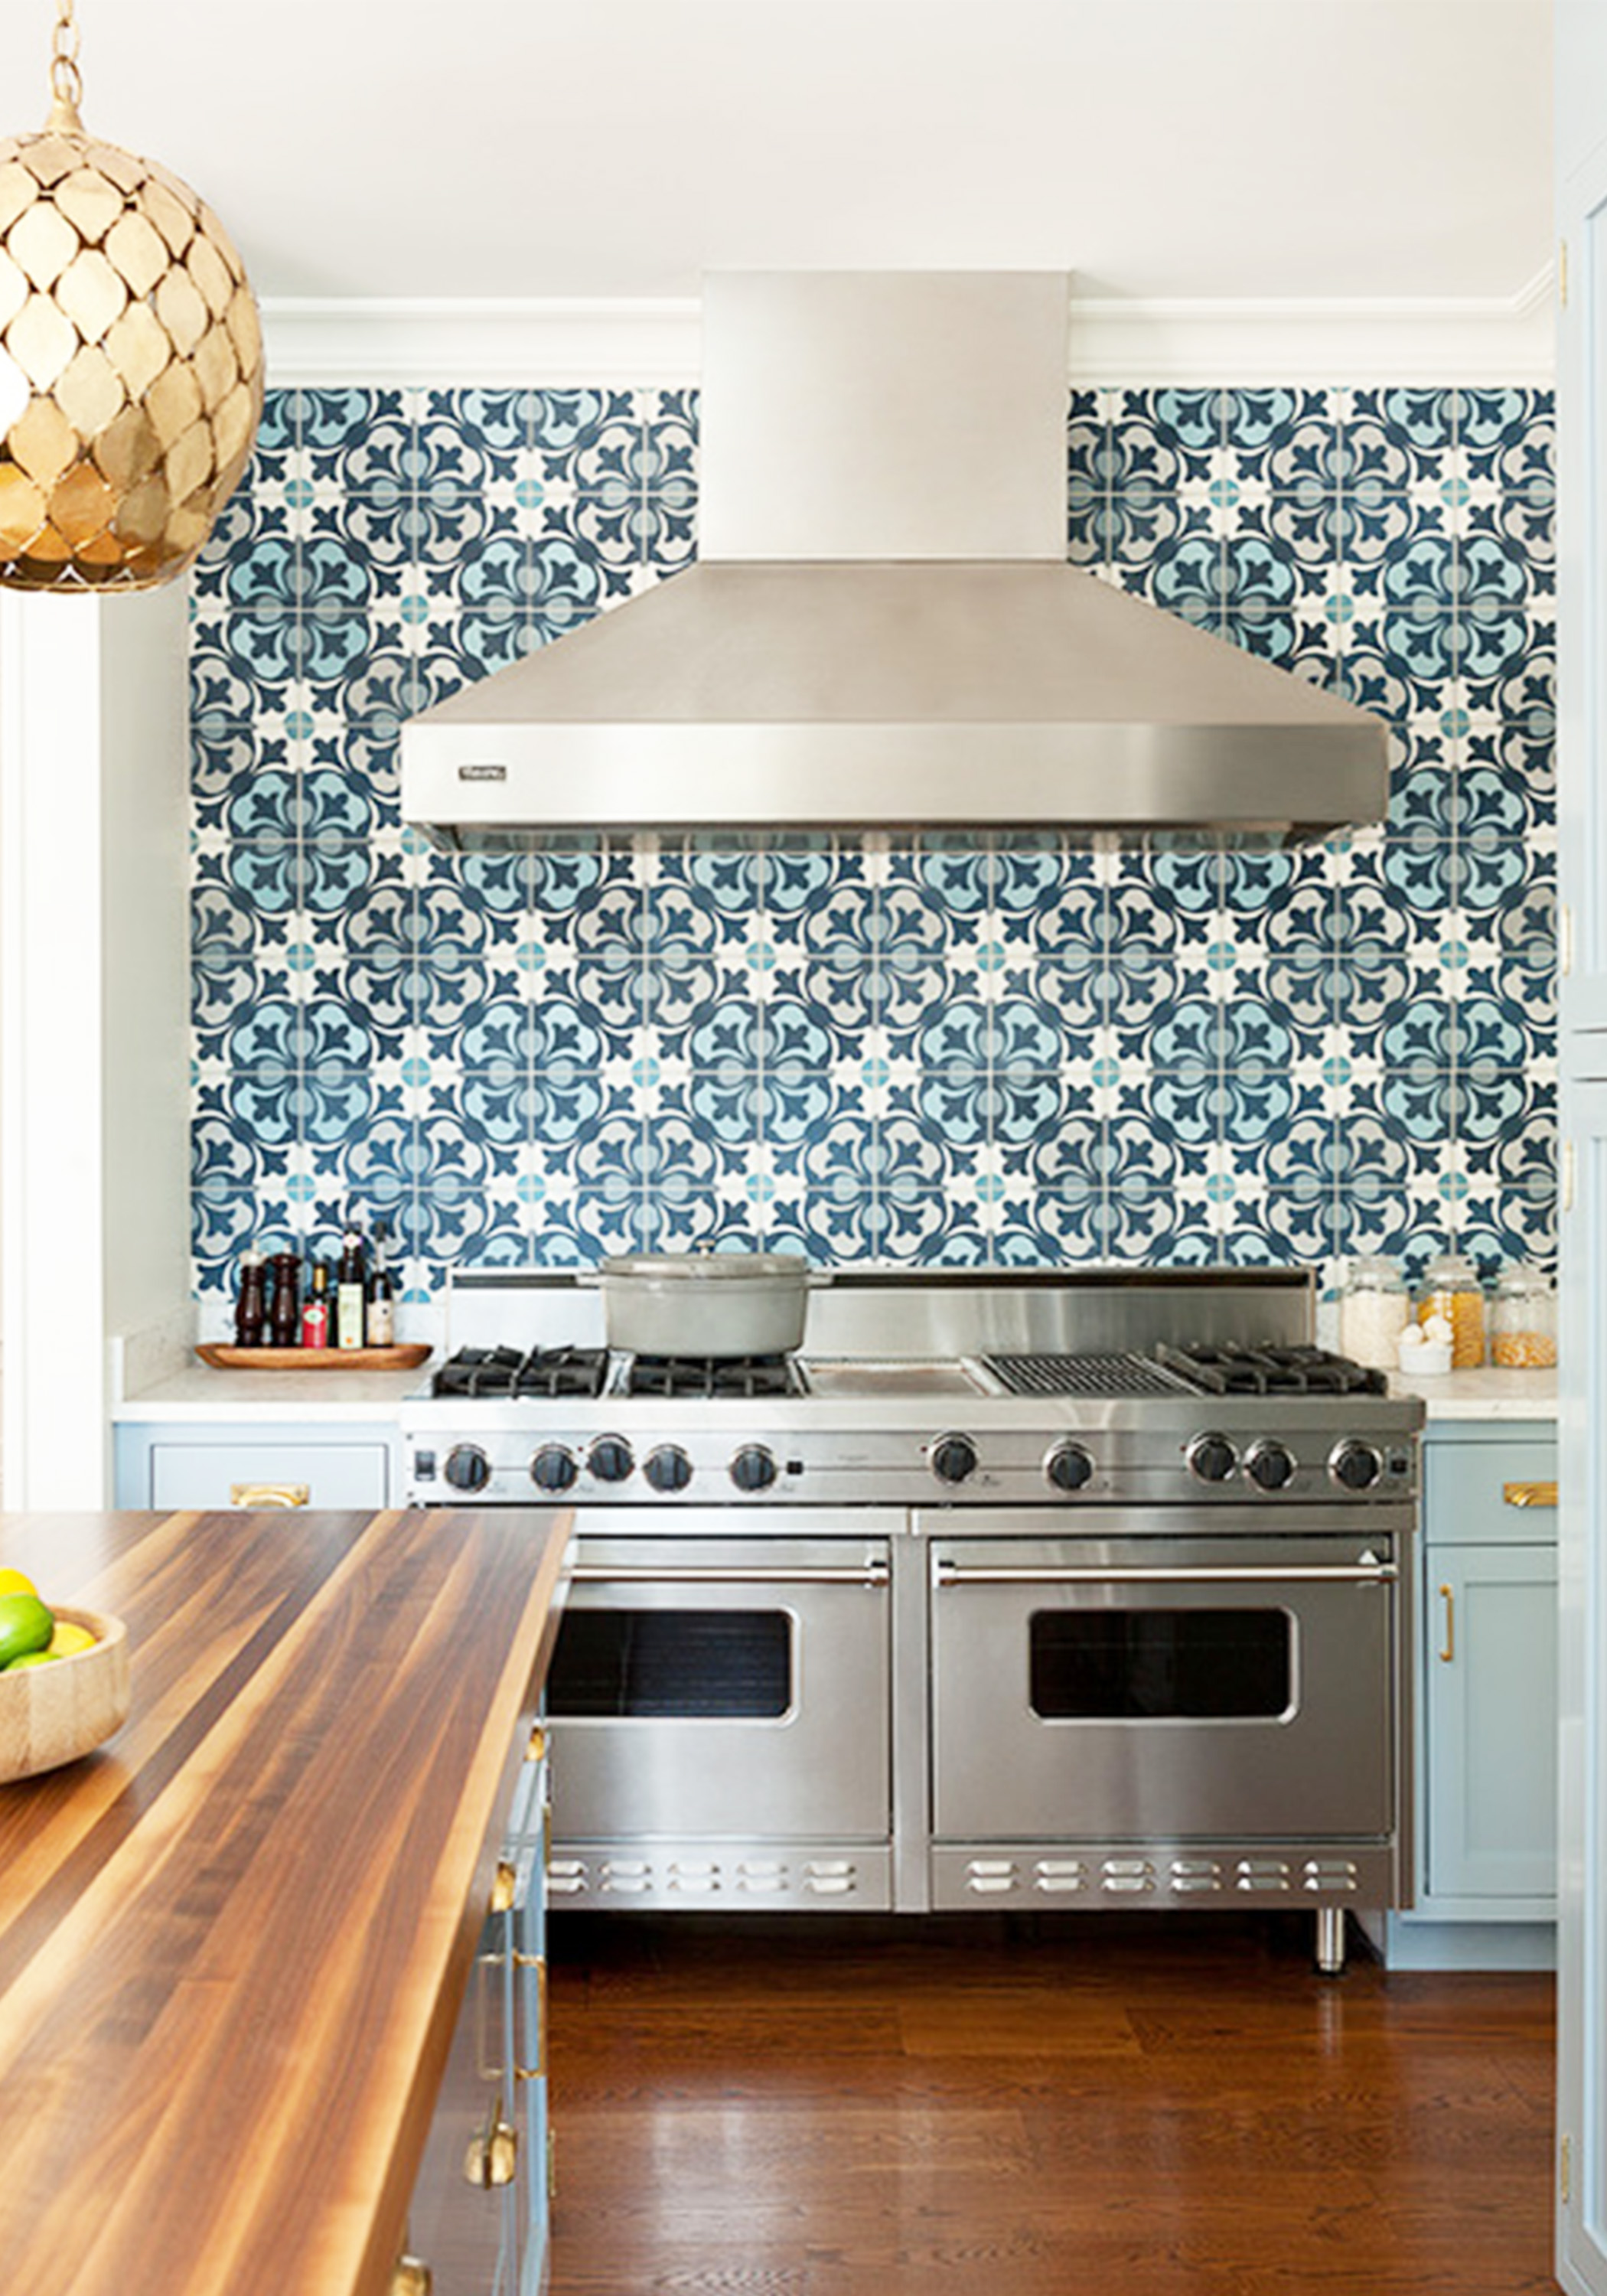 - 17 Tempting Tile Backsplash Ideas For Behind The Stove COCOCOZY